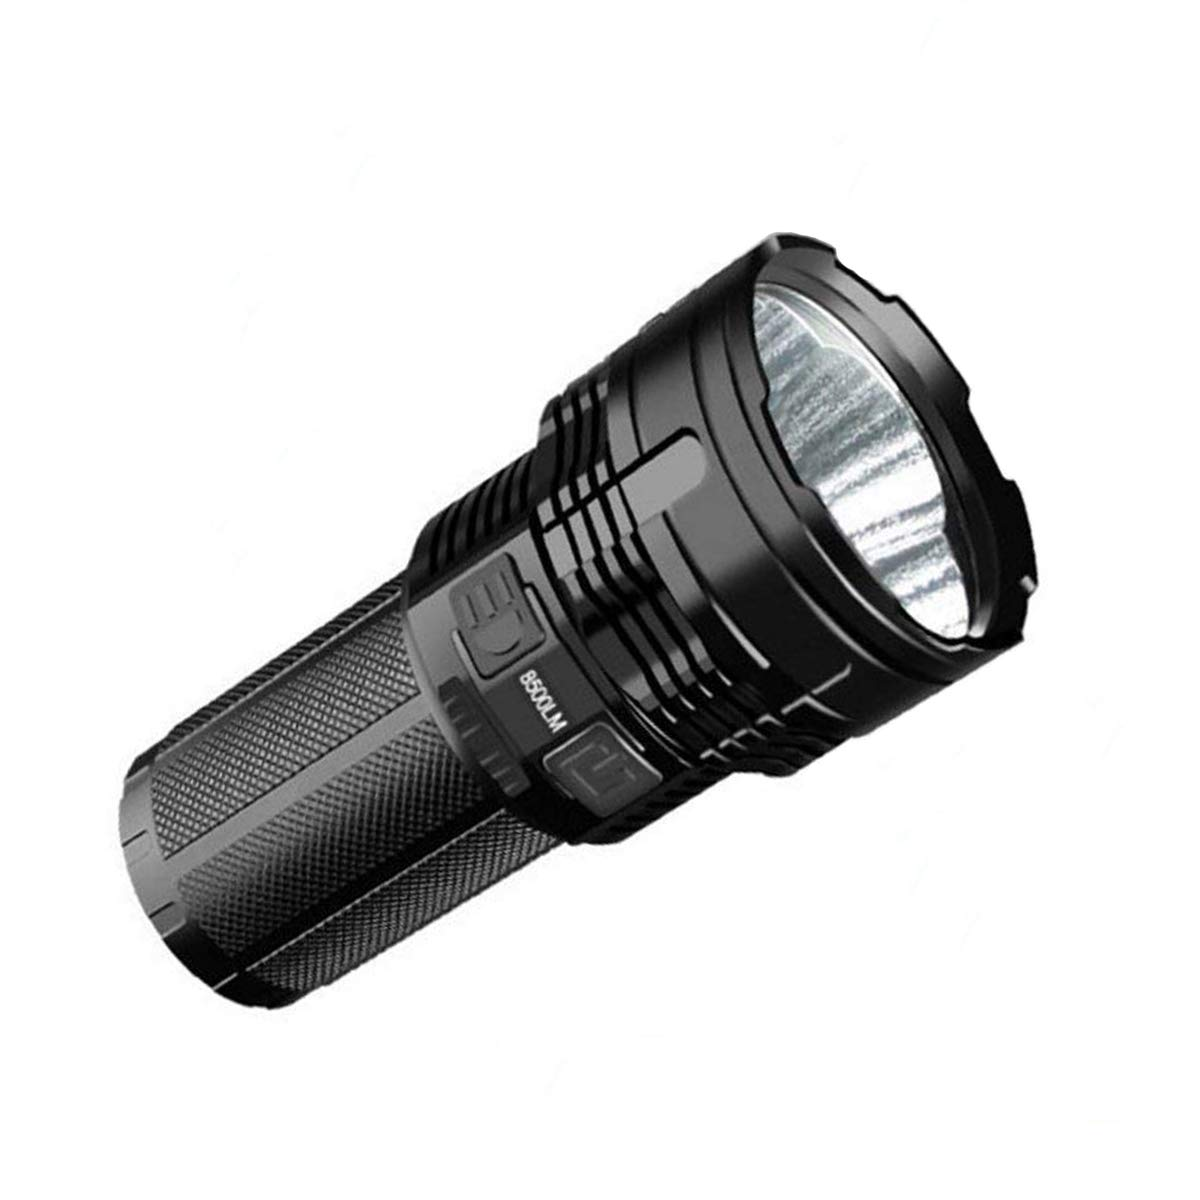 IMALENT Creatrek DT35 Led Flashlight USB Rechargeable CREE XHP35 18650 battery Include Flashlights For Hunting Camping Delivery By DHL